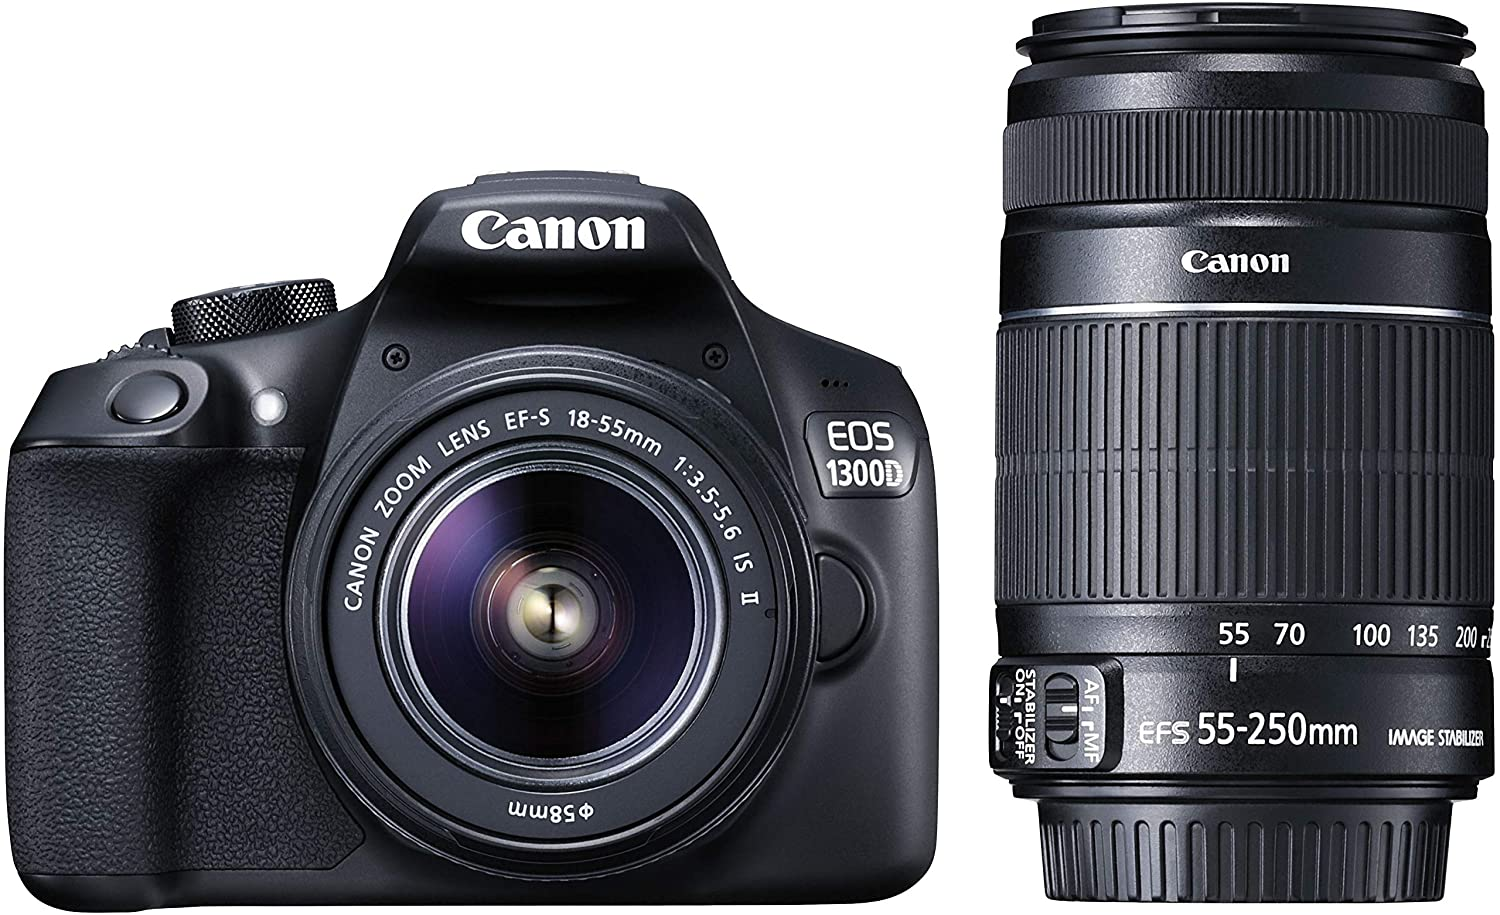 Best Camera Under 40000 In India 2020 canon-eos-1300d